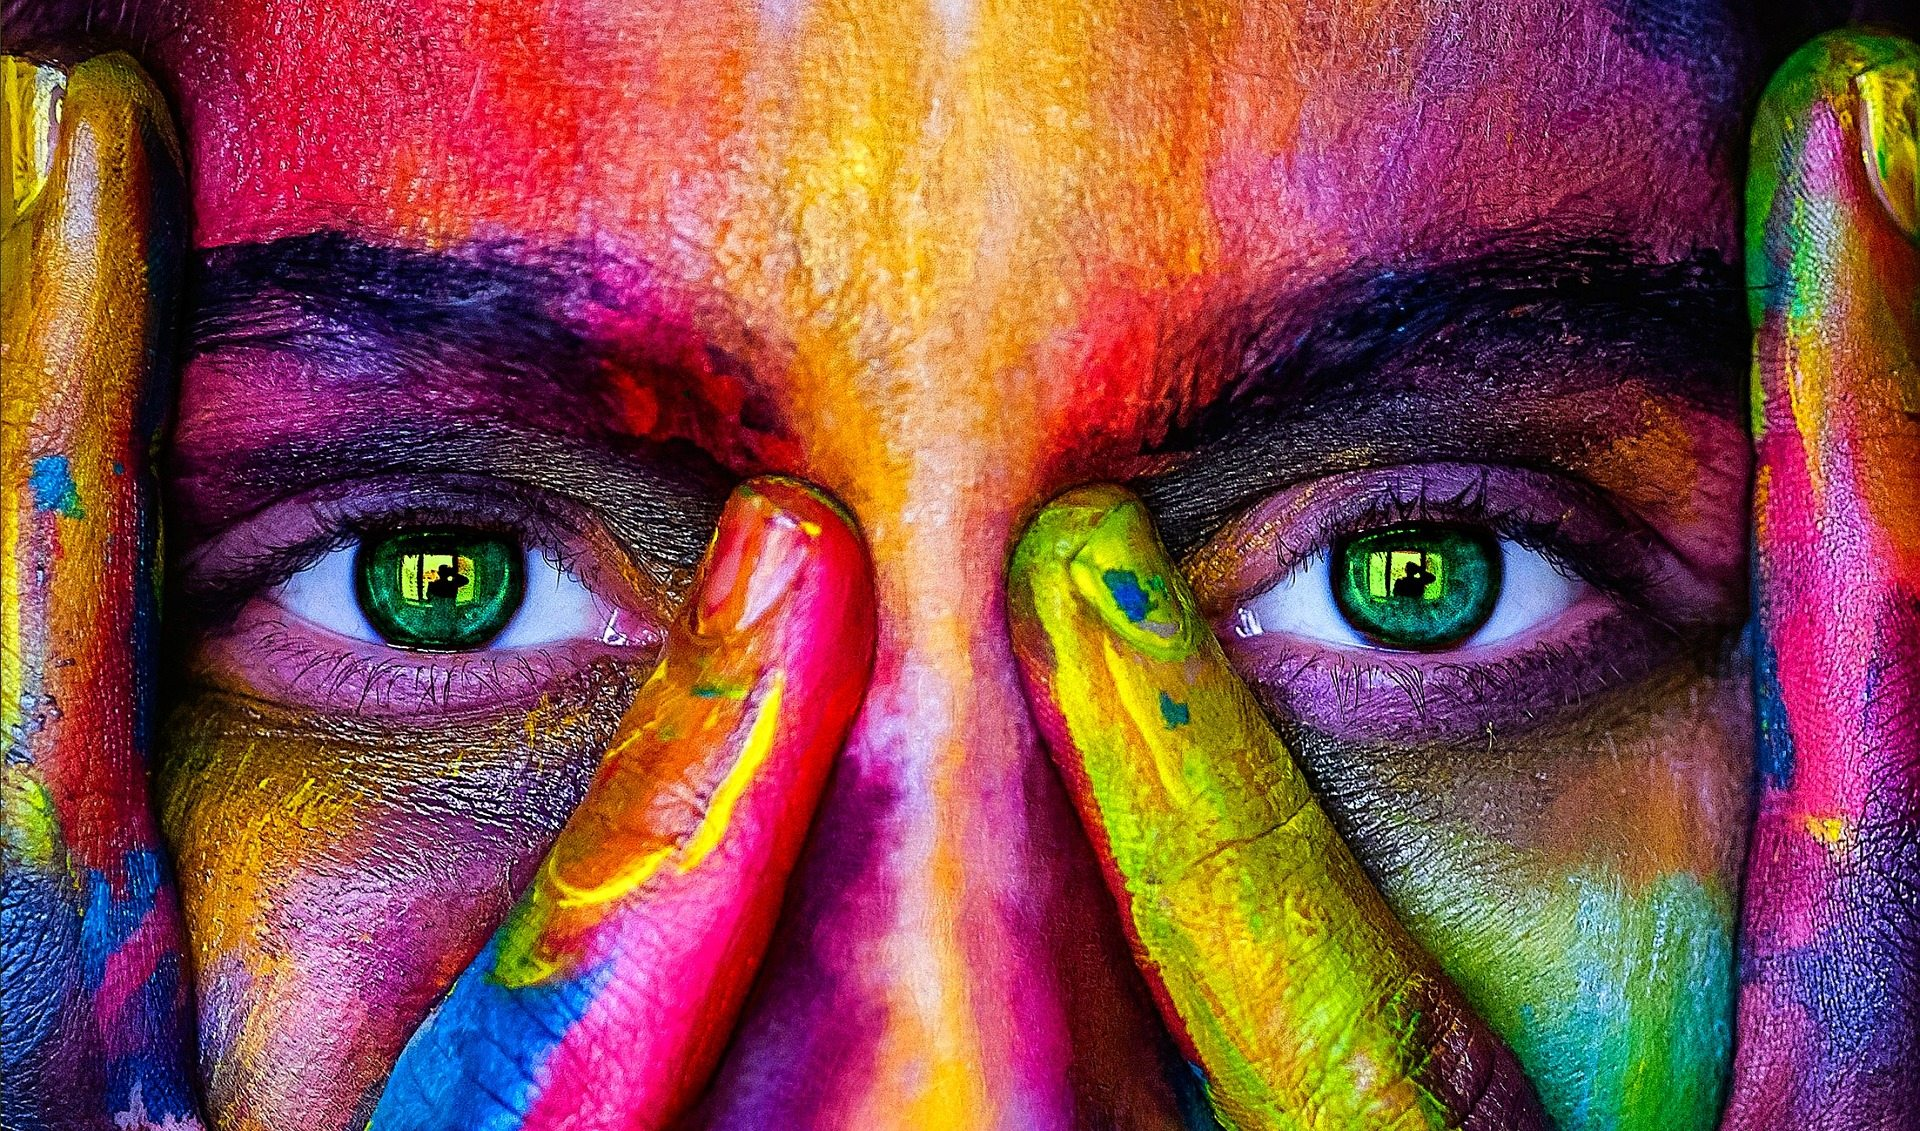 Image: woman's face with brightly colored paint on it